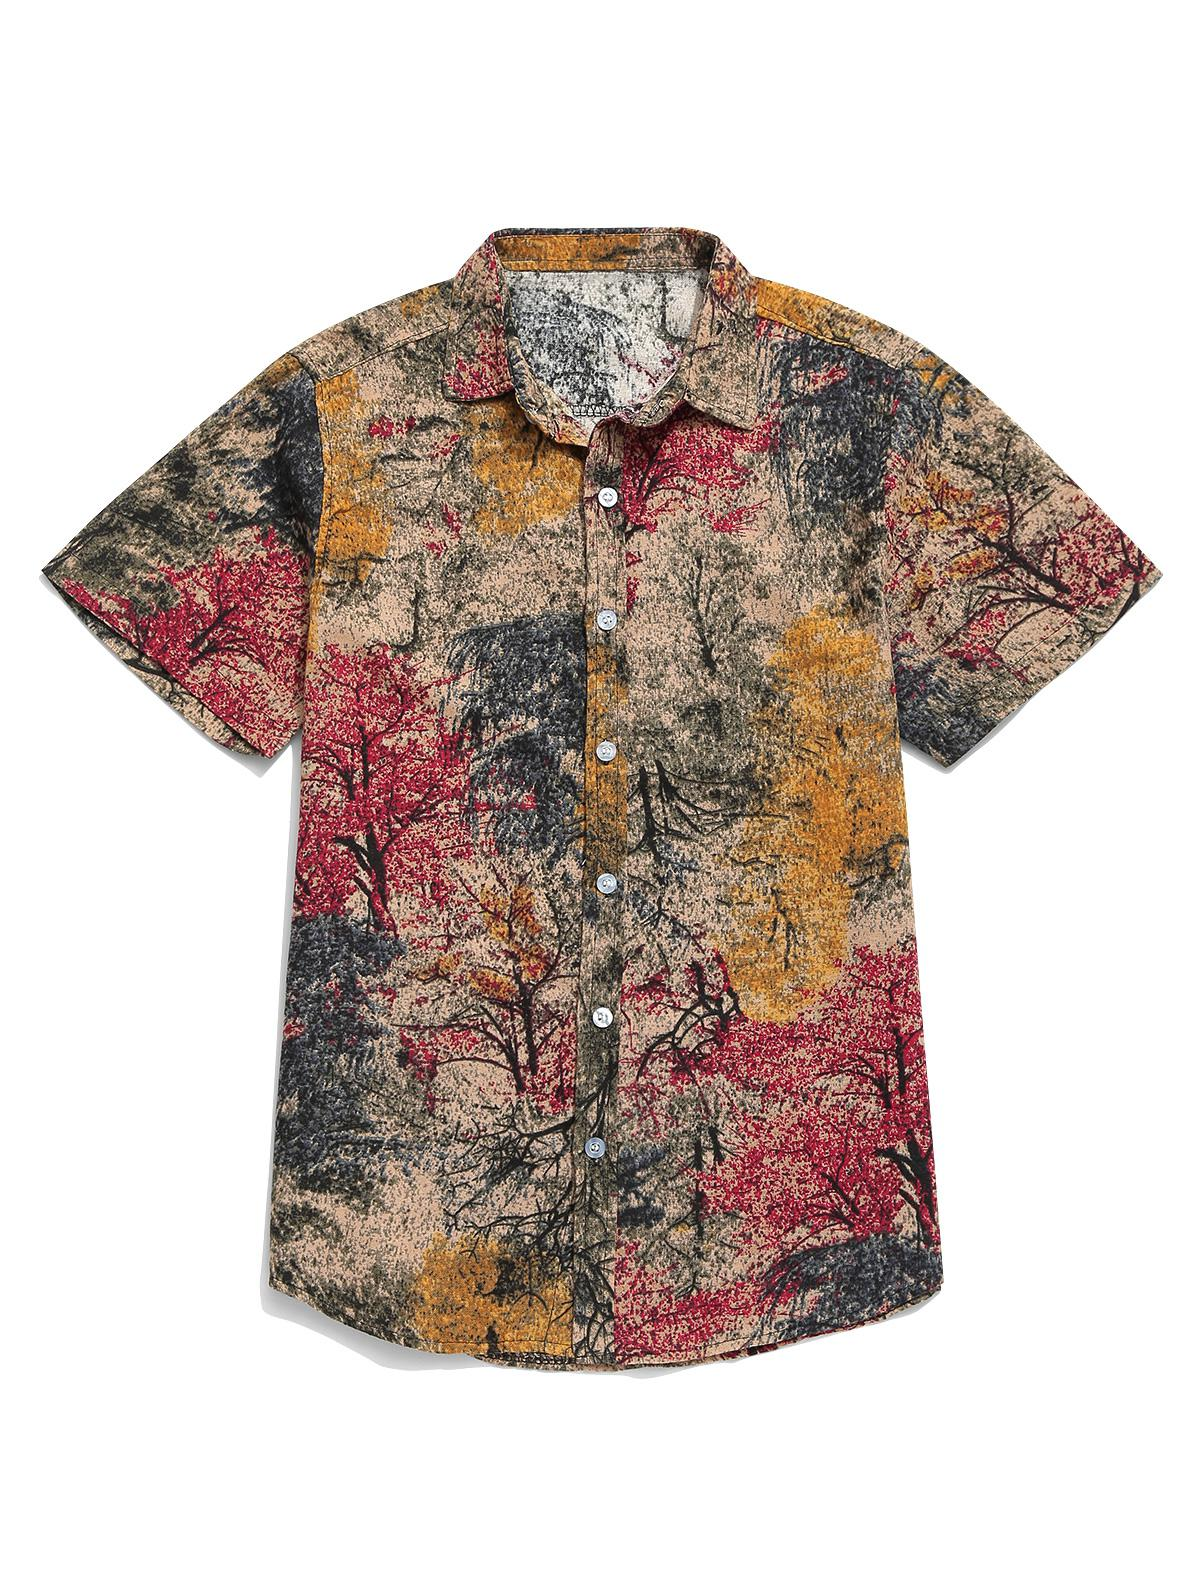 Chinese Colorful Ink Painting Print Button Shirt thumbnail